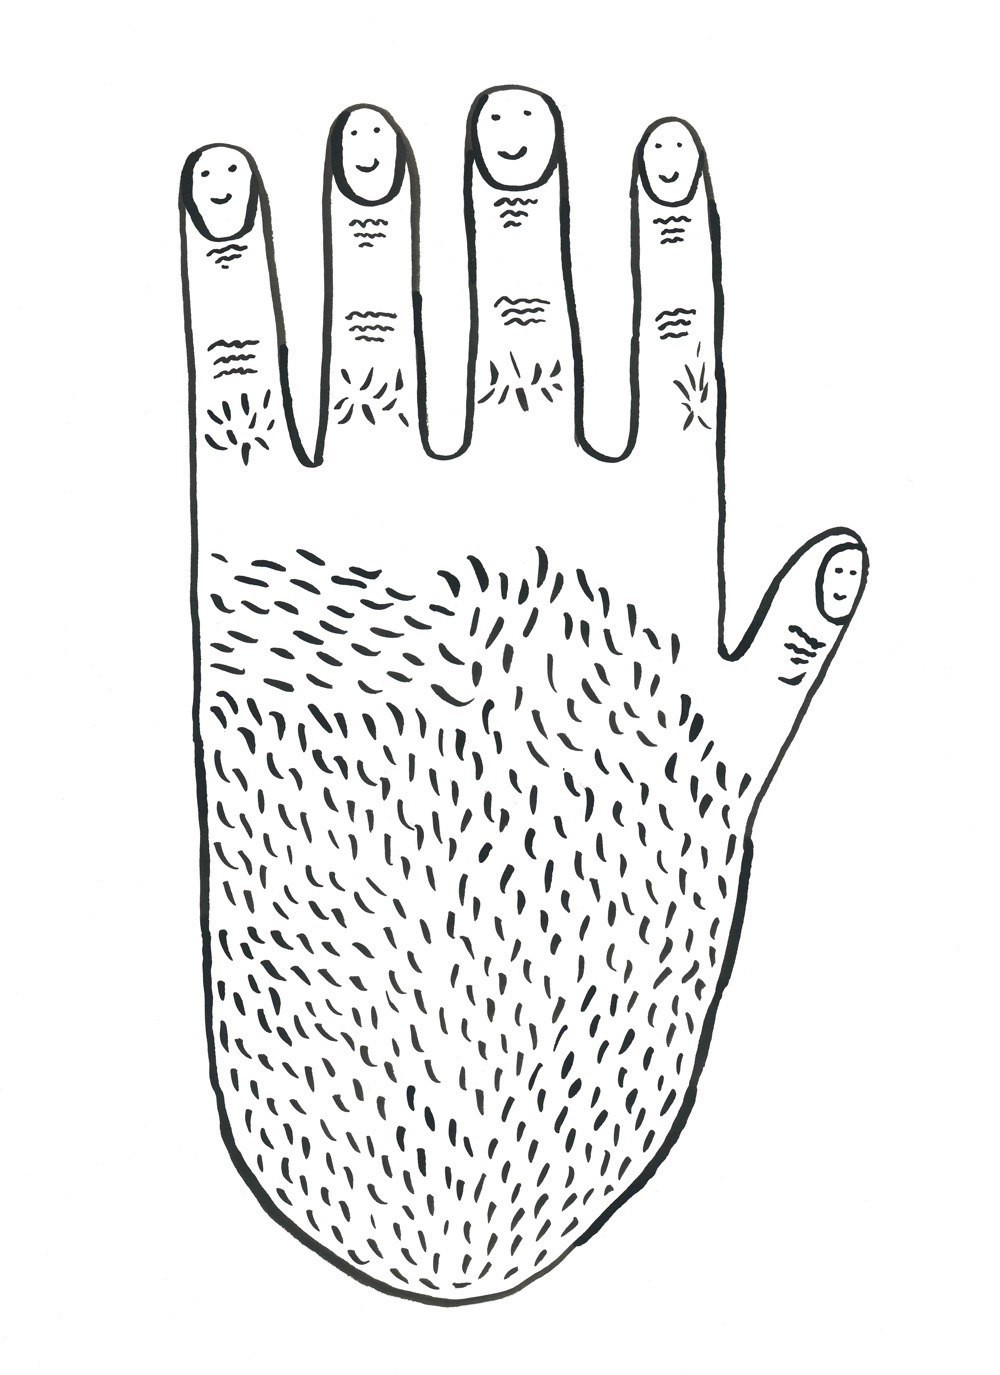 illustration, illustrations, illustrator, illustrators, hand, hands, face, faces, smile, smiles, smiling, happy, knuckles, hair, strokes